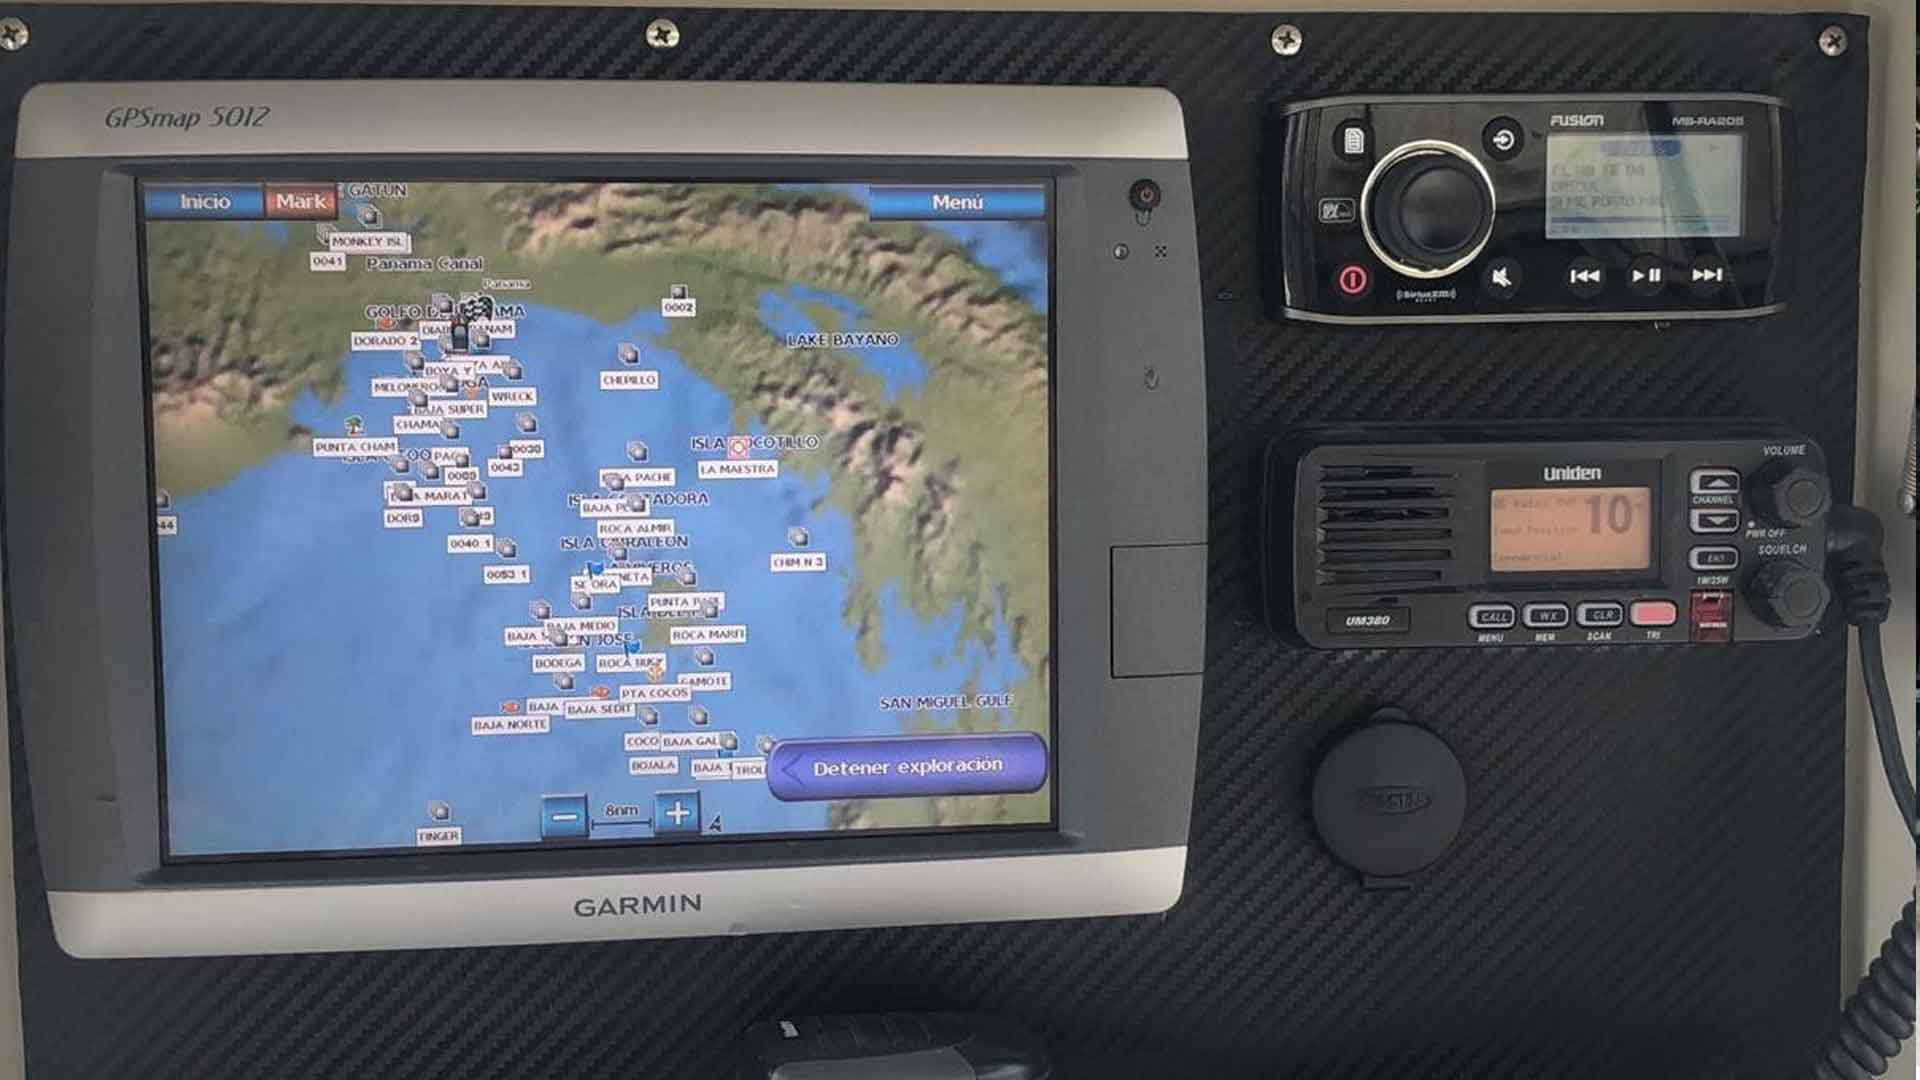 Garmin GPS Map and Uniden Radio